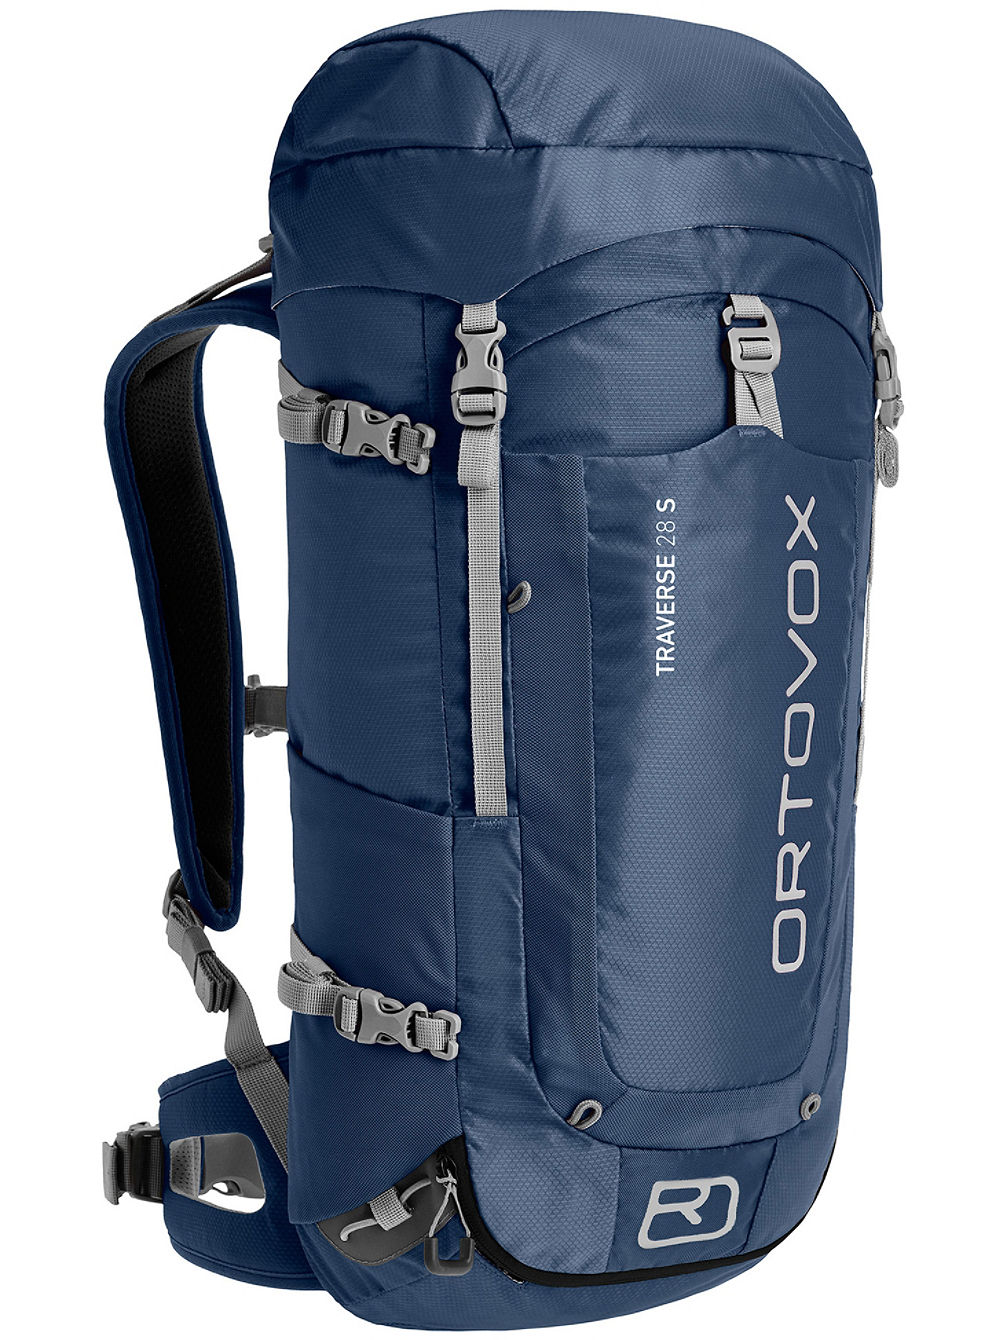 Traverse 28 S Backpack